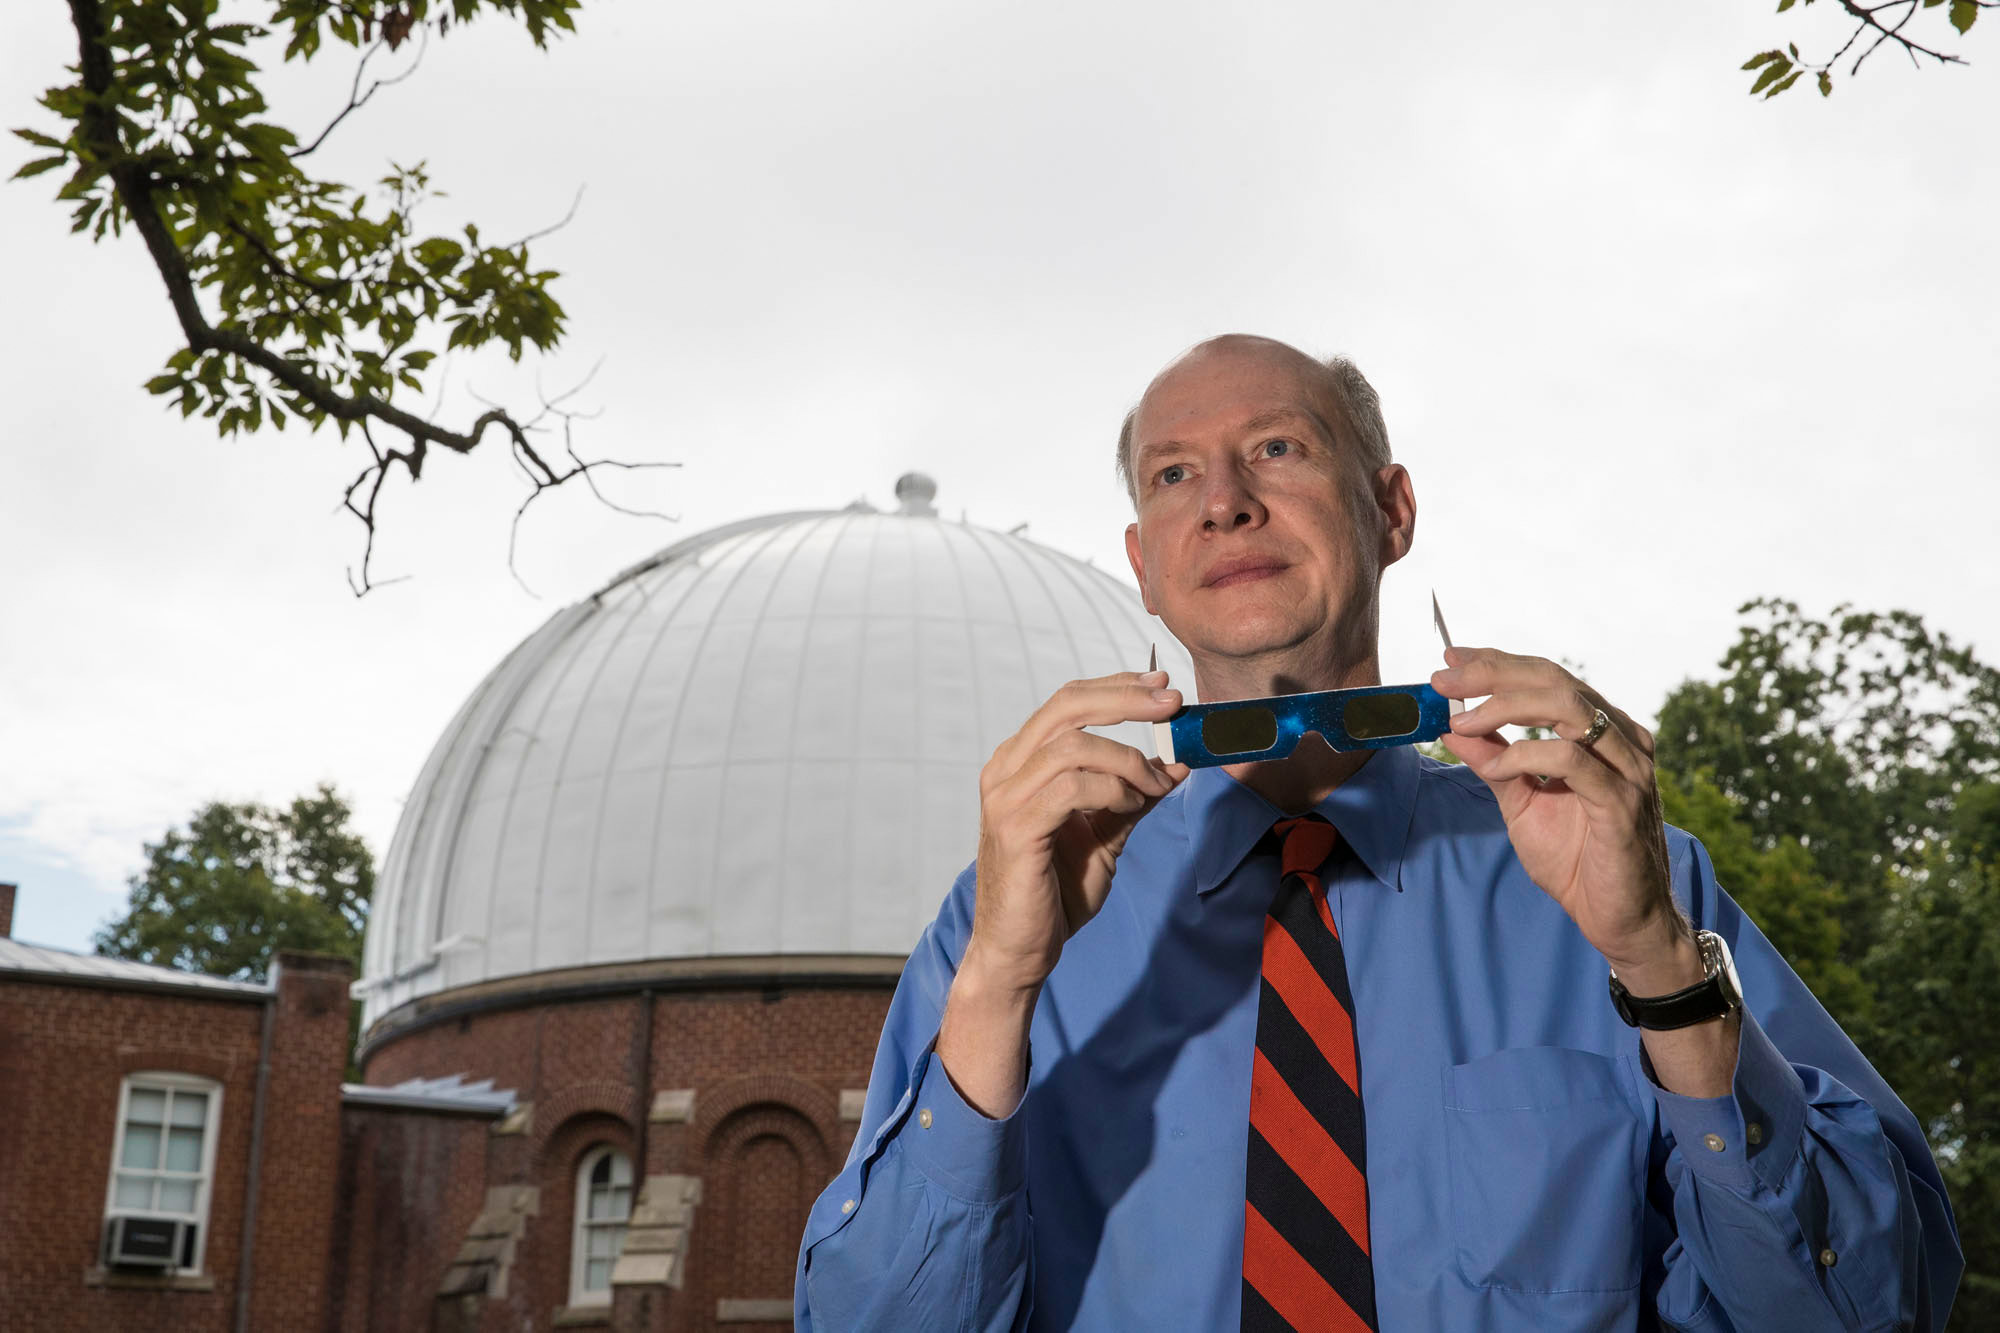 Astronomer Ed Murphy plans to view the solar eclipse from Columbia, South Carolina, along the path of totality. (Photo by Dan Addison, University Communications)